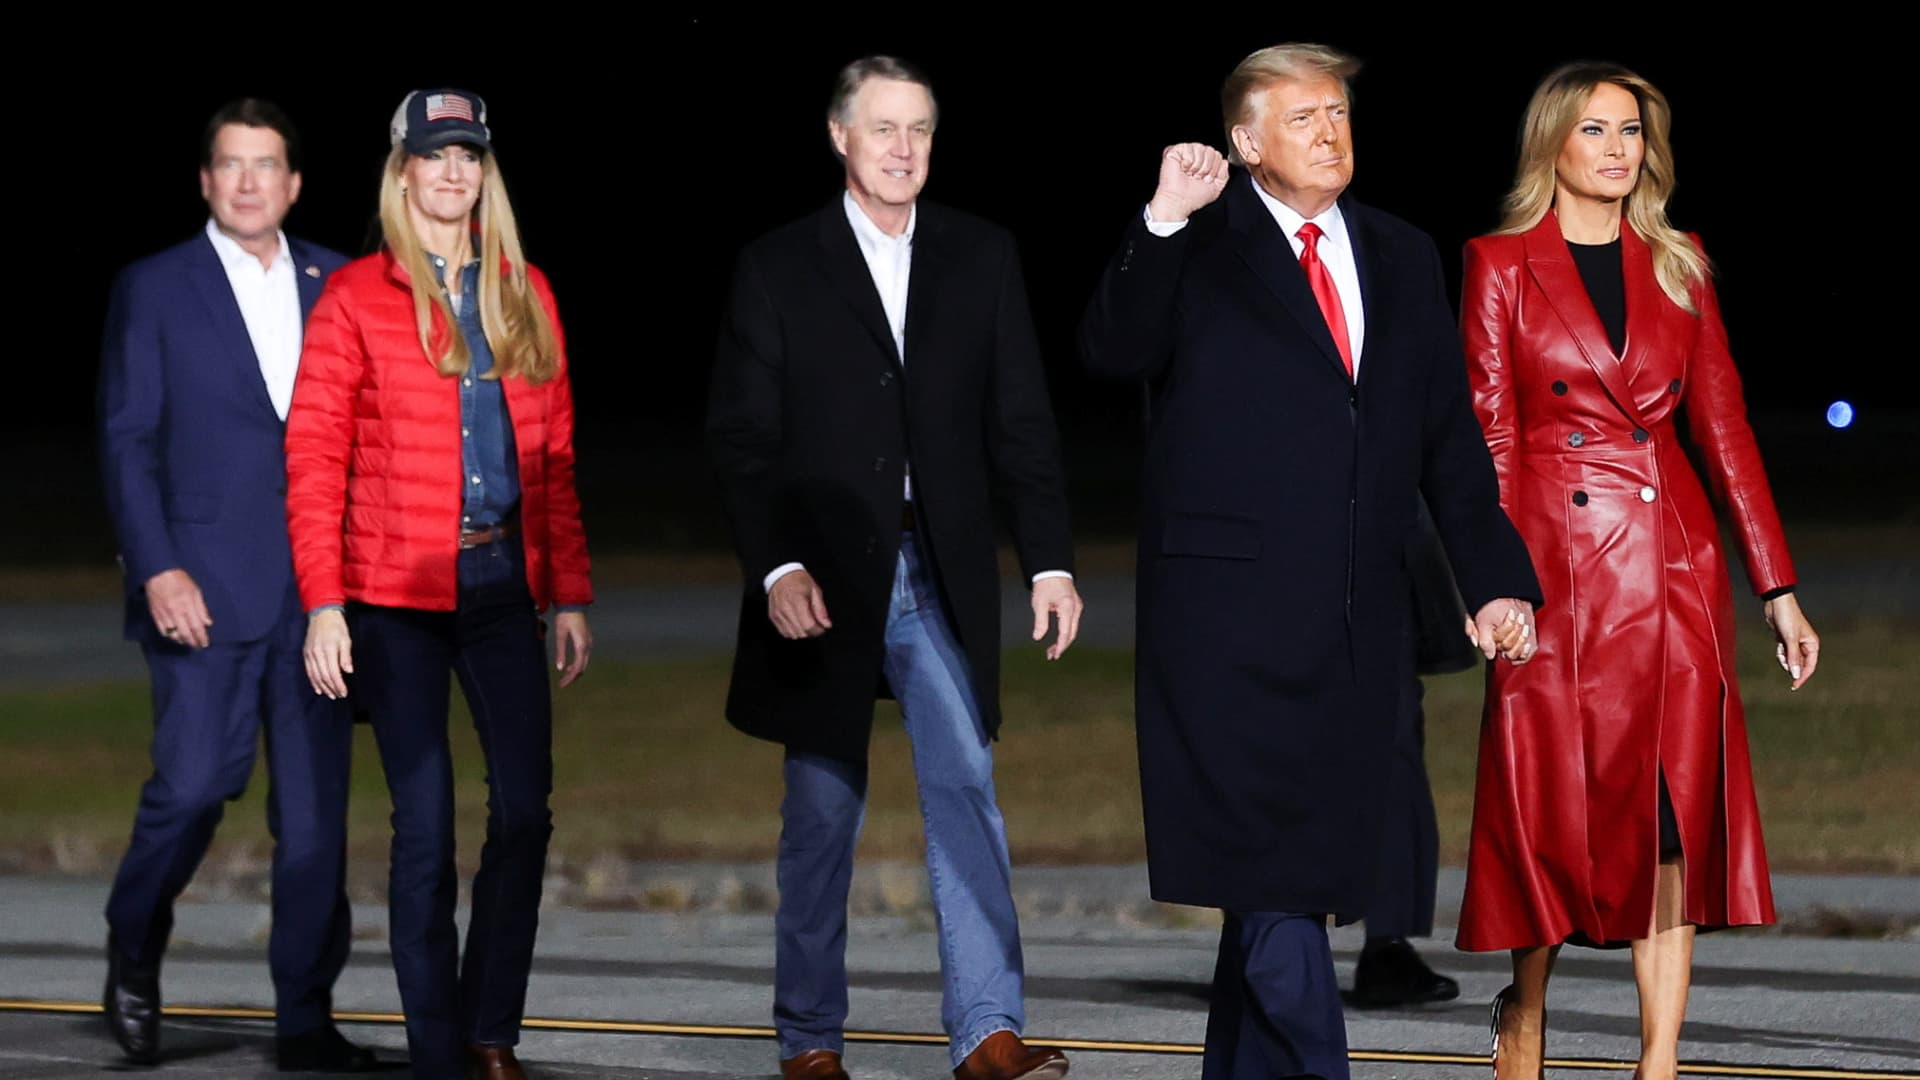 U.S. President Donald Trump, first lady Melania Trump and Republican U.S. senators David Perdue and Kelly Loeffler, arrive to attend a campaign rally, in Valdosta, Georgia, U.S., December 5, 2020.